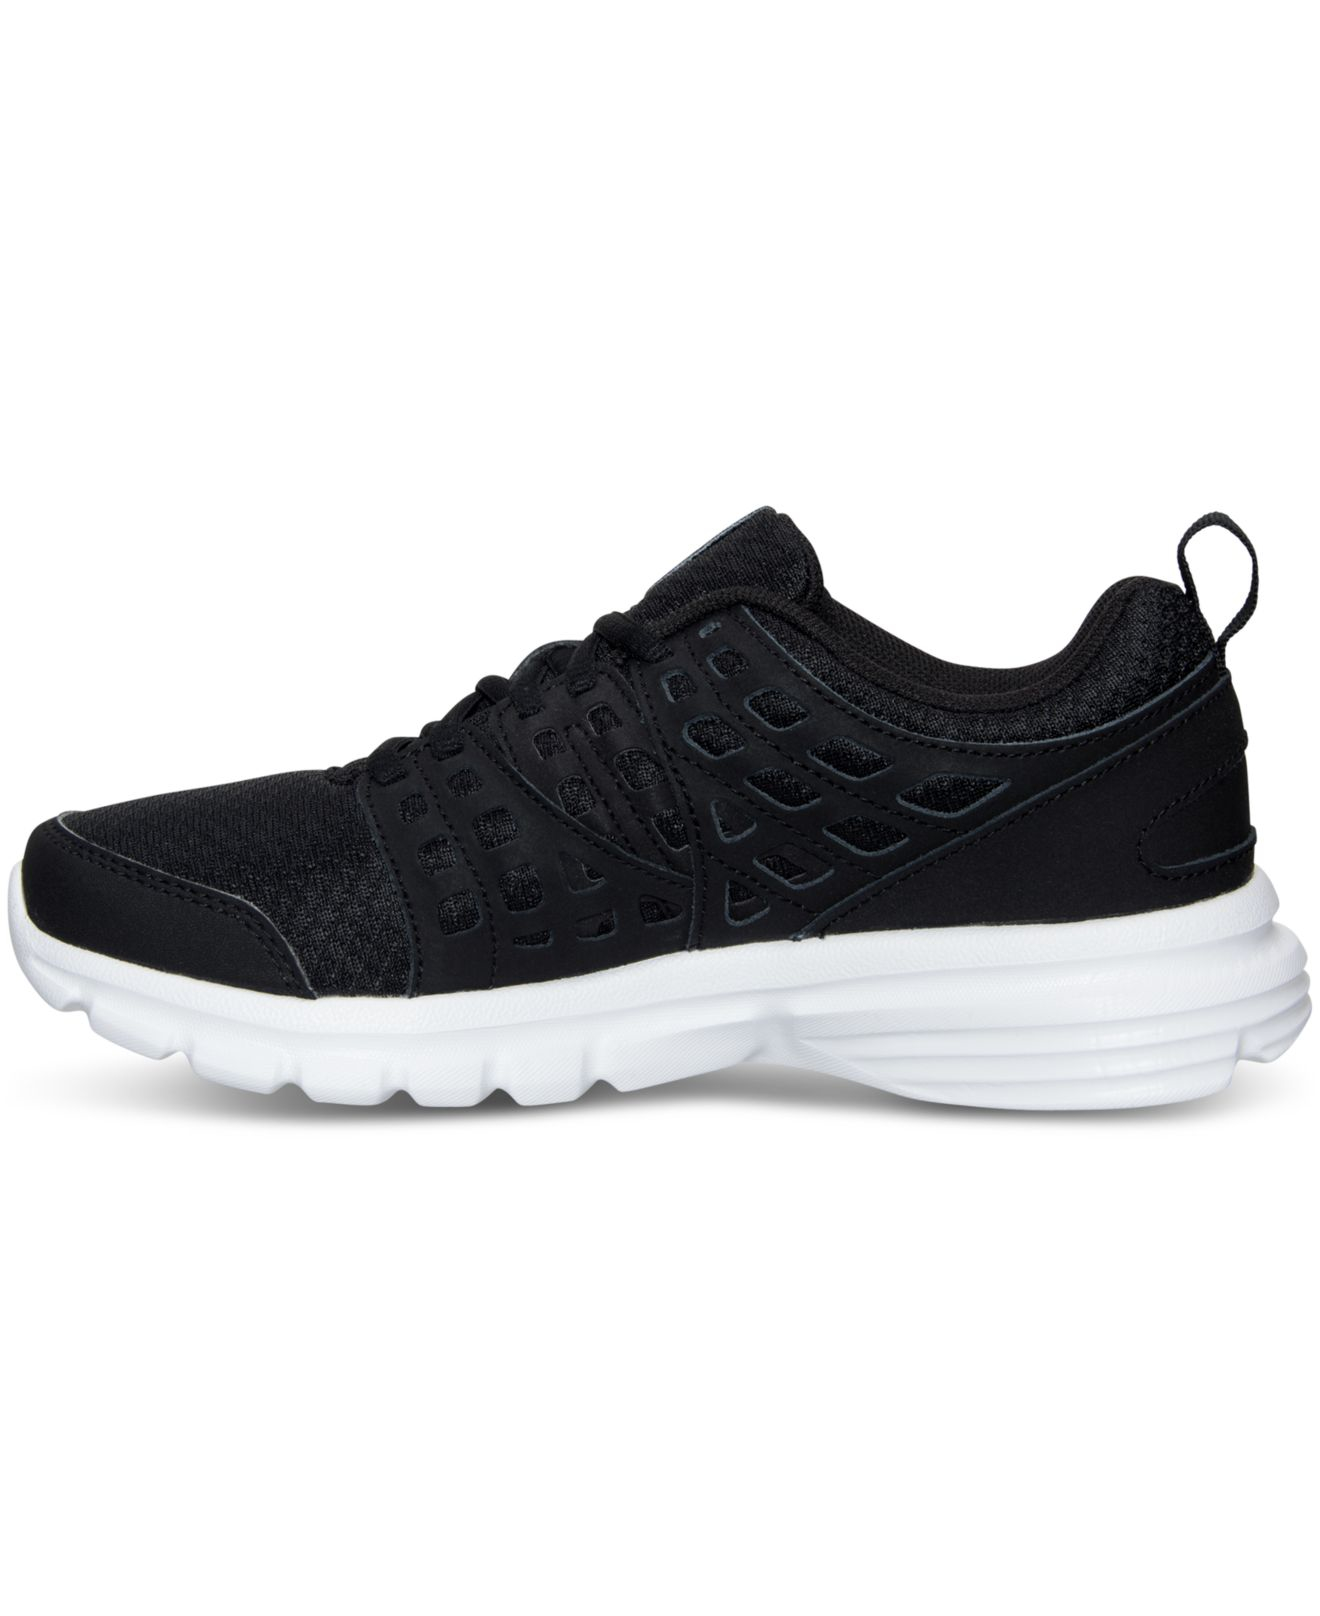 223e7c4d2a22c6 Lyst - Reebok Women s Speed Rise Running Sneakers From Finish Line ...